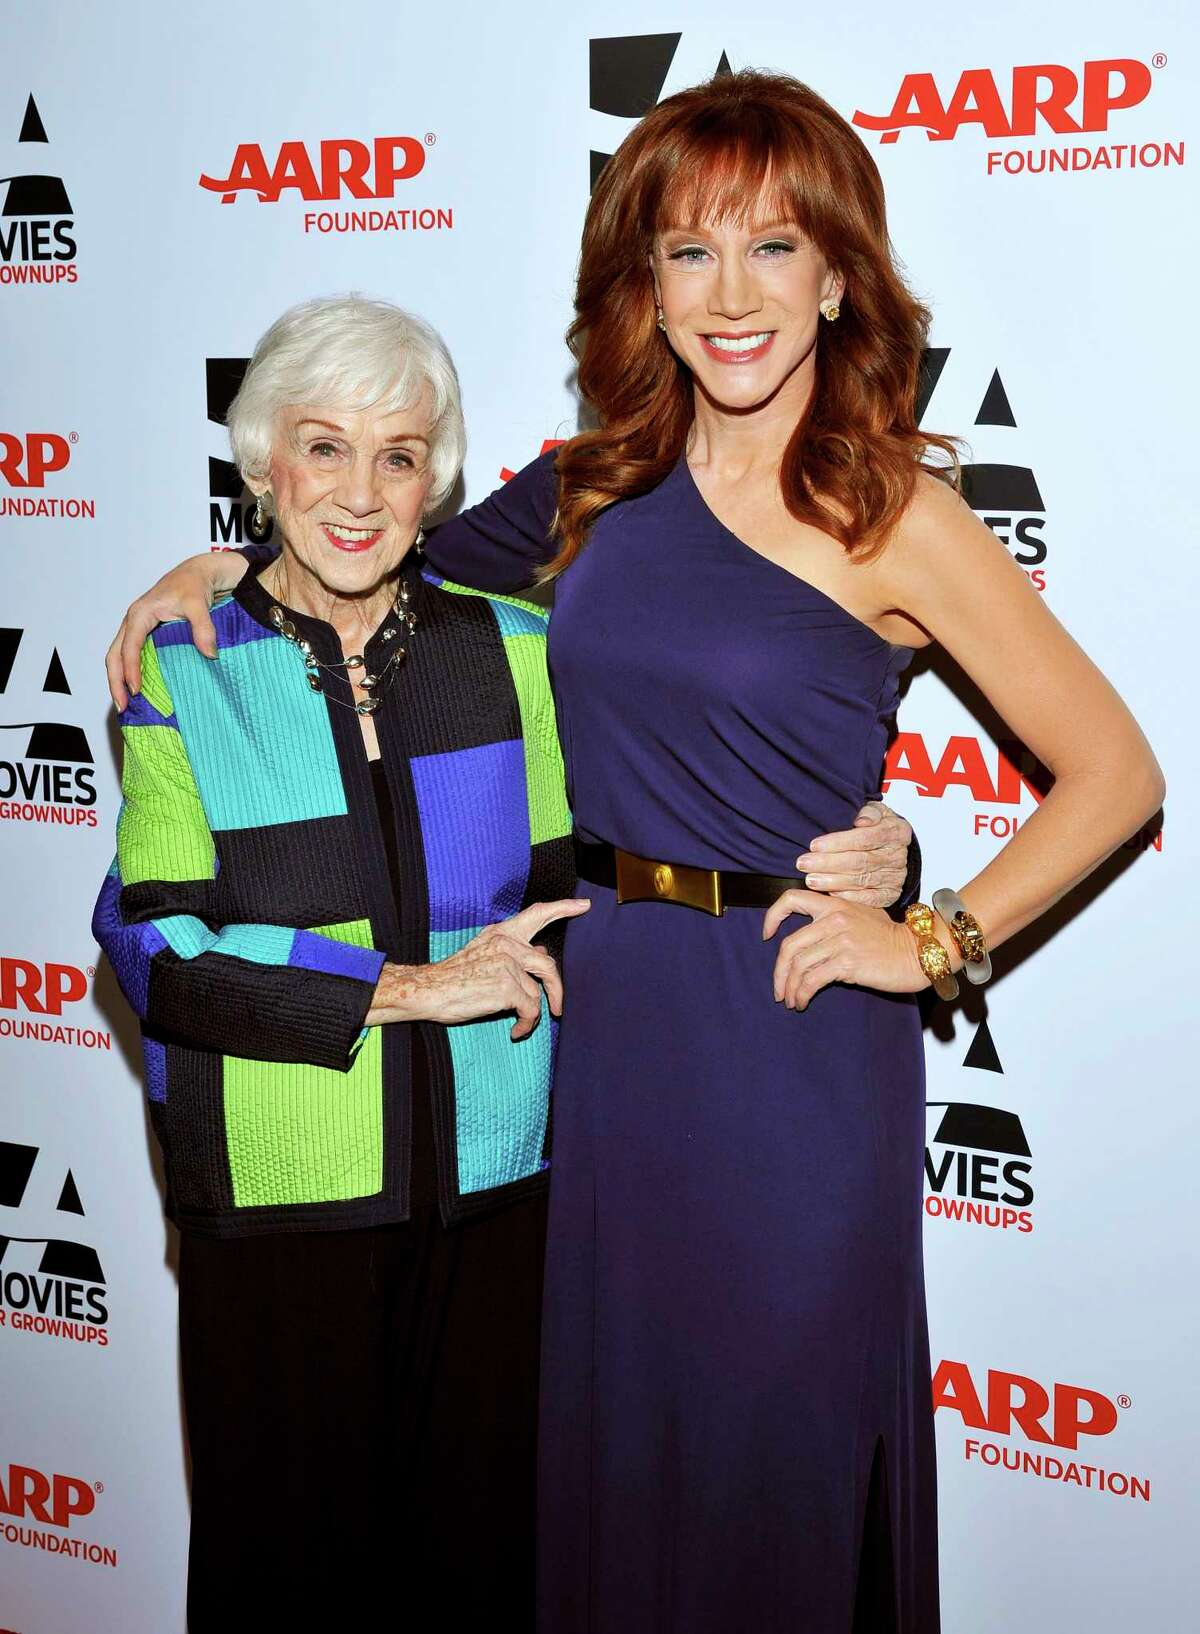 FILE - In this Feb. 10, 2014 file photo, Kathy Griffin, right, and mother Maggie Griffin arrive at the 2014 AARP's Movies for Grownups Gala, in Beverly Hills, Calif. Maggie Griffin, the mother of comedian Kathy Griffin, who inspired many of the jokes in her famous daughter's standup routines, died Tuesday, March 17, 2020. She was 99. (Photo by Vince Bucci/Invision for AARP Media/AP Images, File)